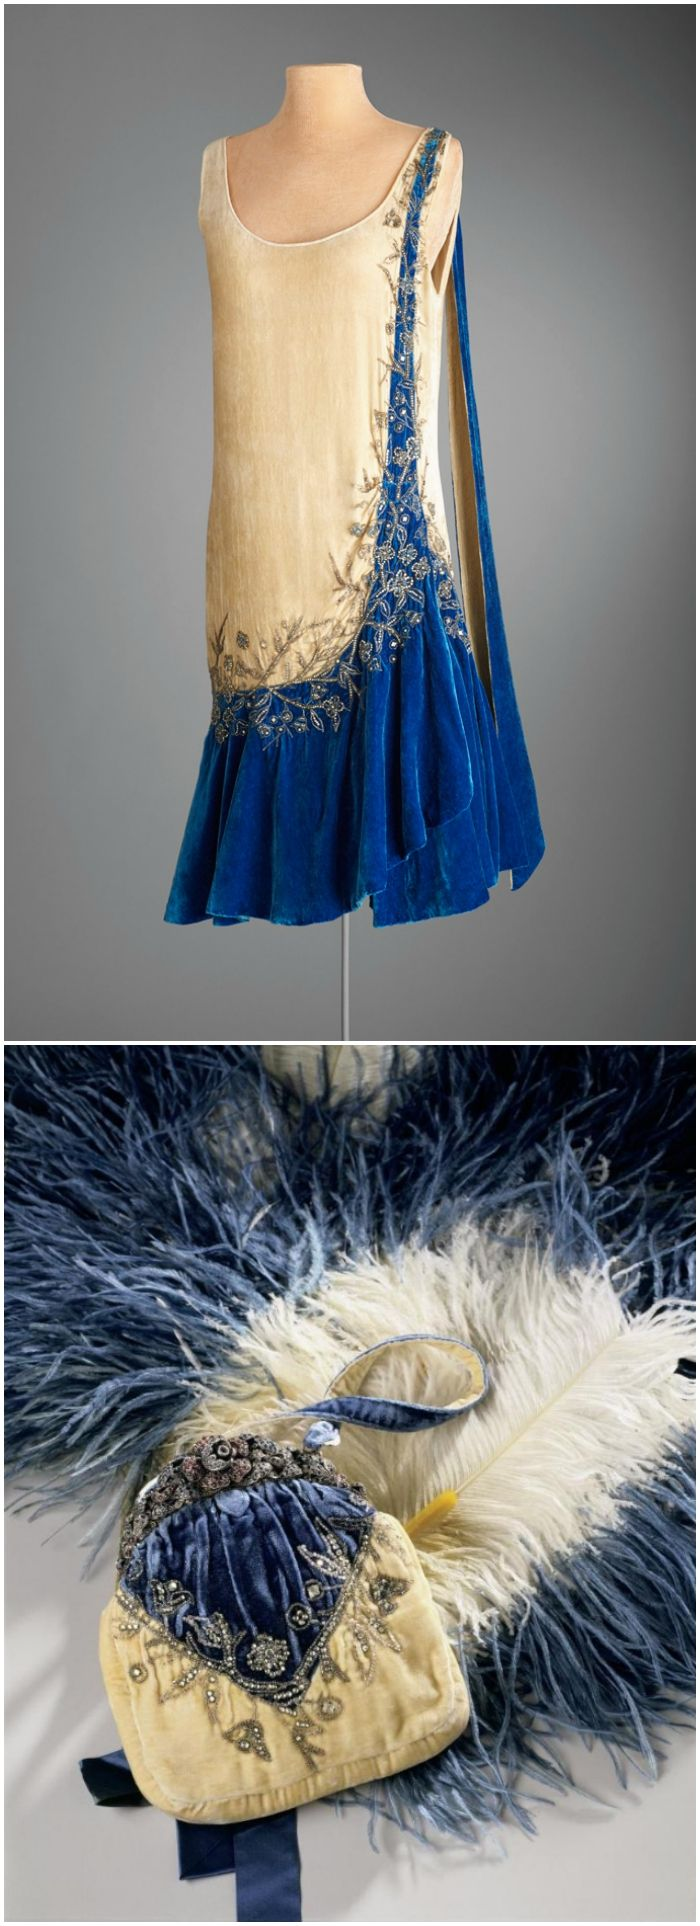 Marjorie Merriweather Post's evening dress and purse, made by Mme. Frances, Inc., New York, 1924-27, Hillwood Estate, Museum & Gardens. Other accessories include a matching slip, cape and fan. Silk velvet, rhinestones.